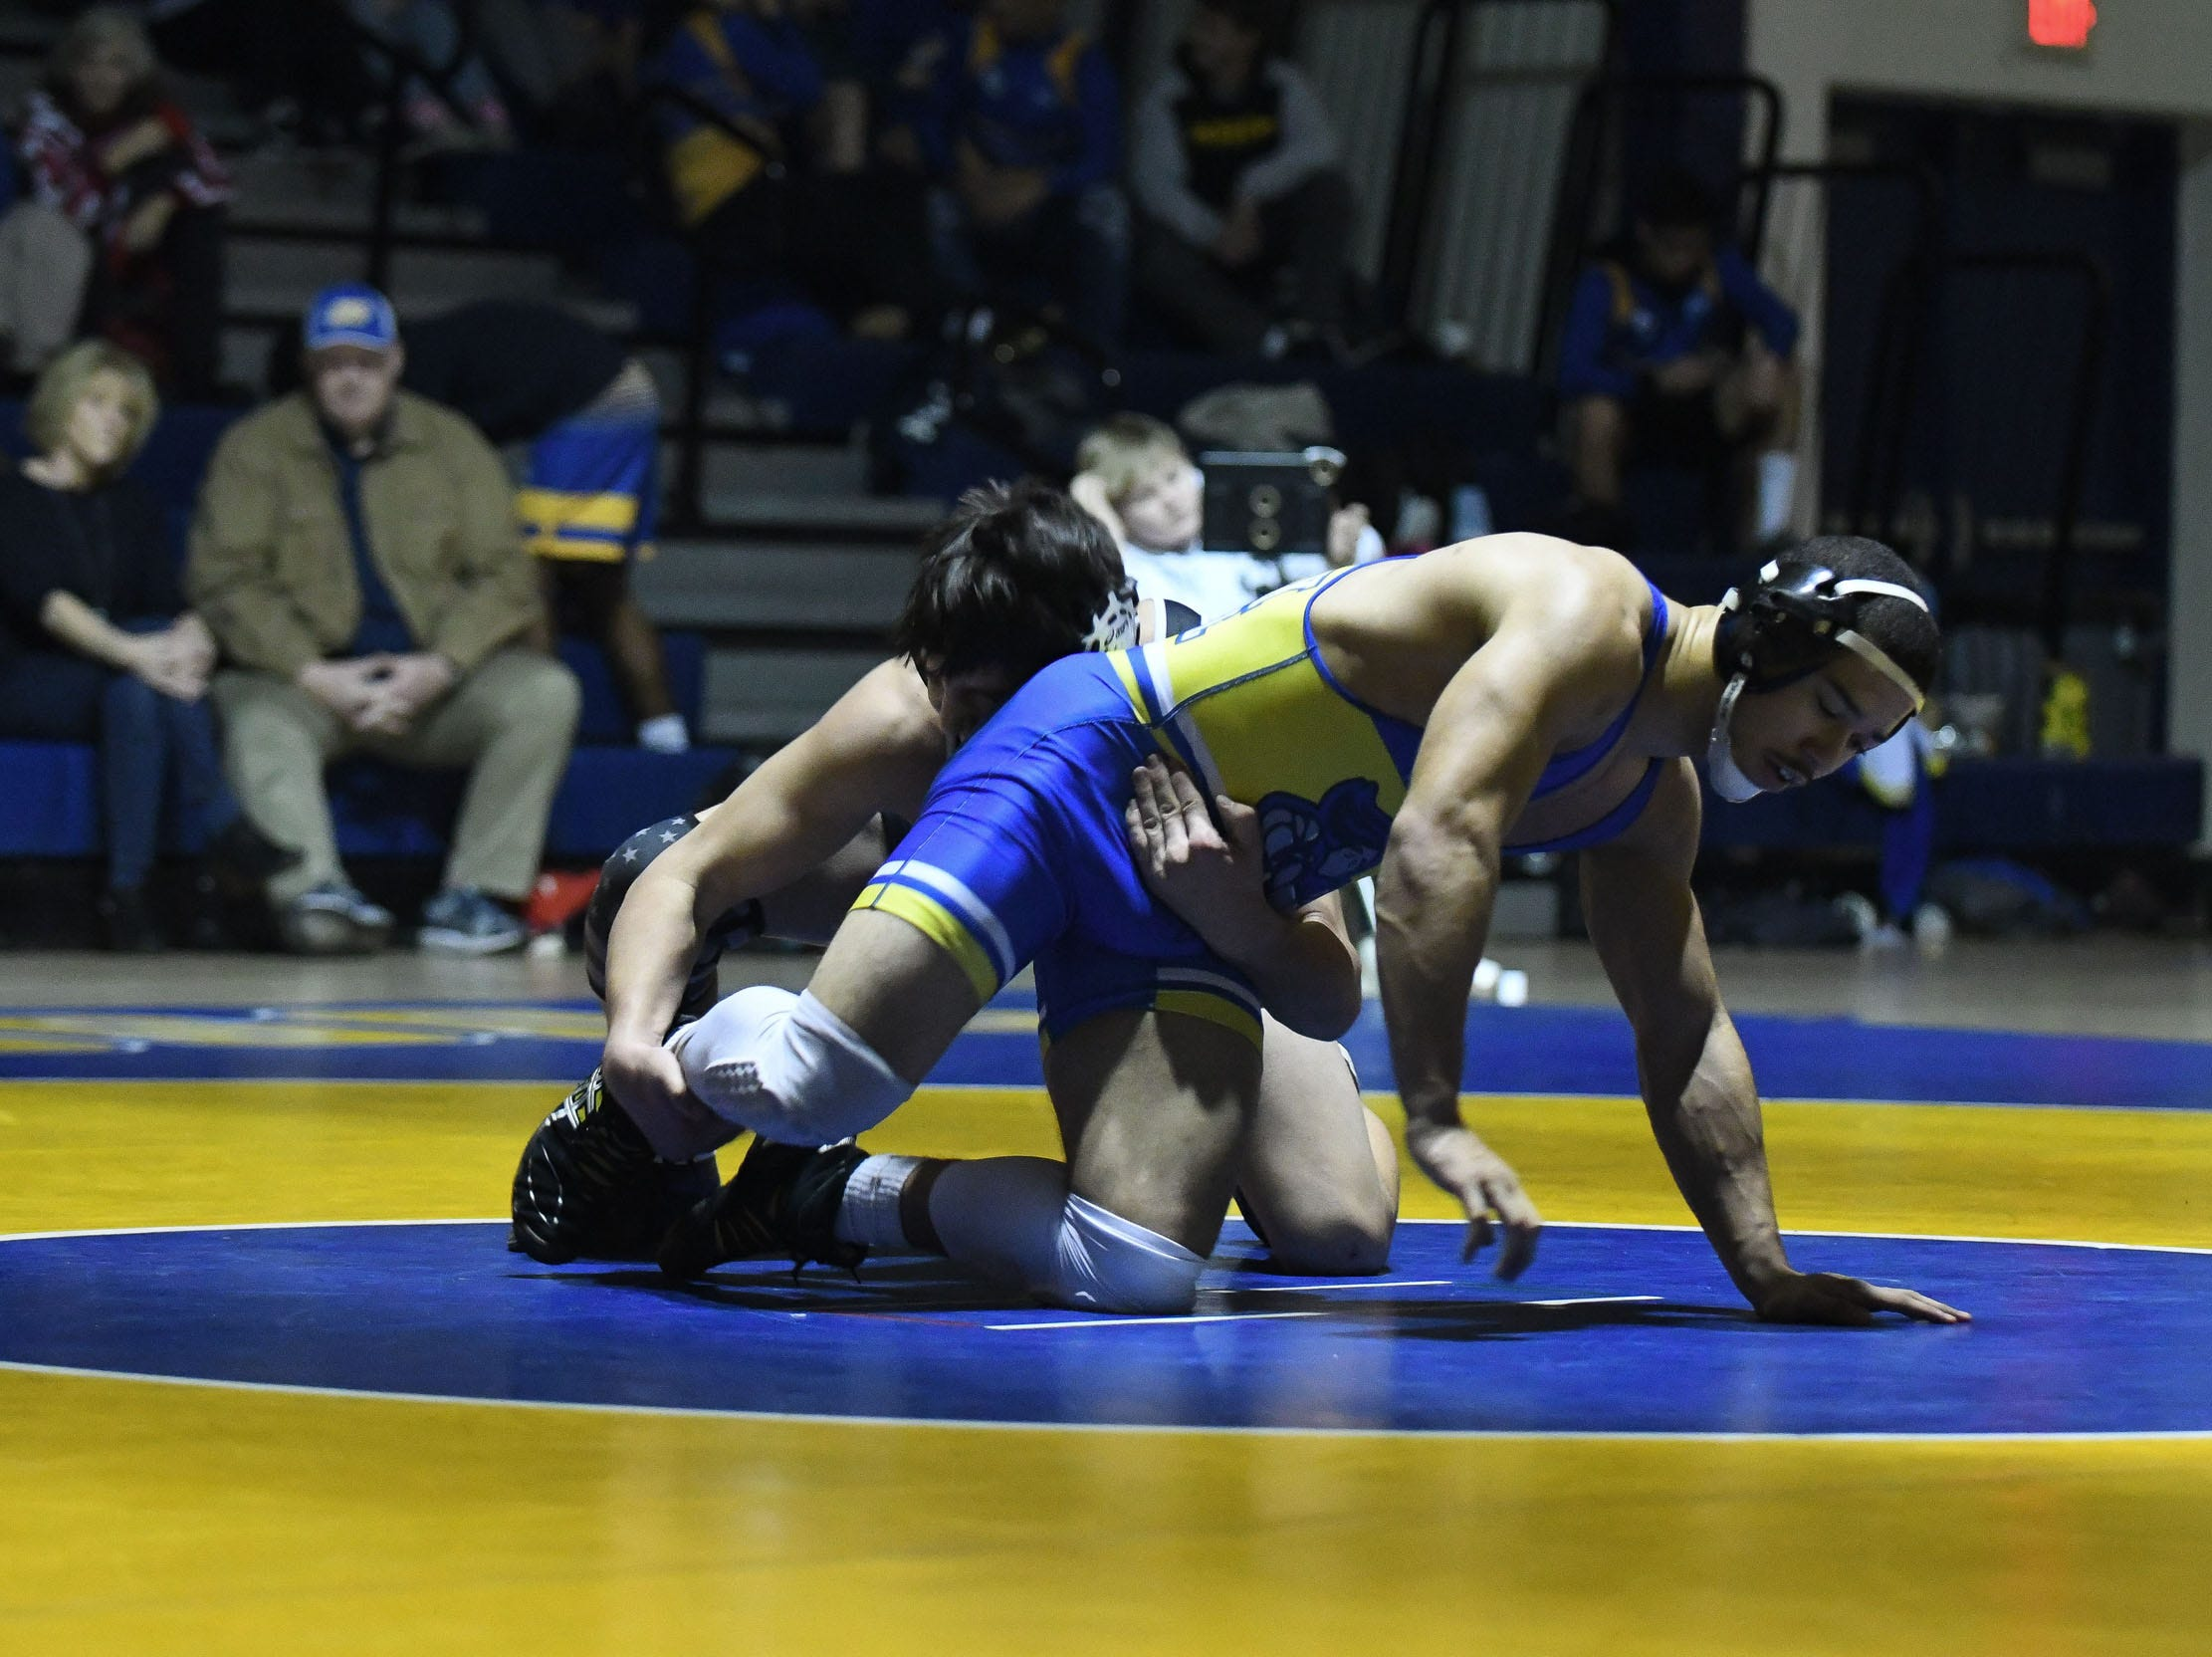 Sussex Central's Jaden Savage battled Sussex Tech's Joshua Negron during the match up at 160lbs on Wednesday, Feb. 6, 2019.